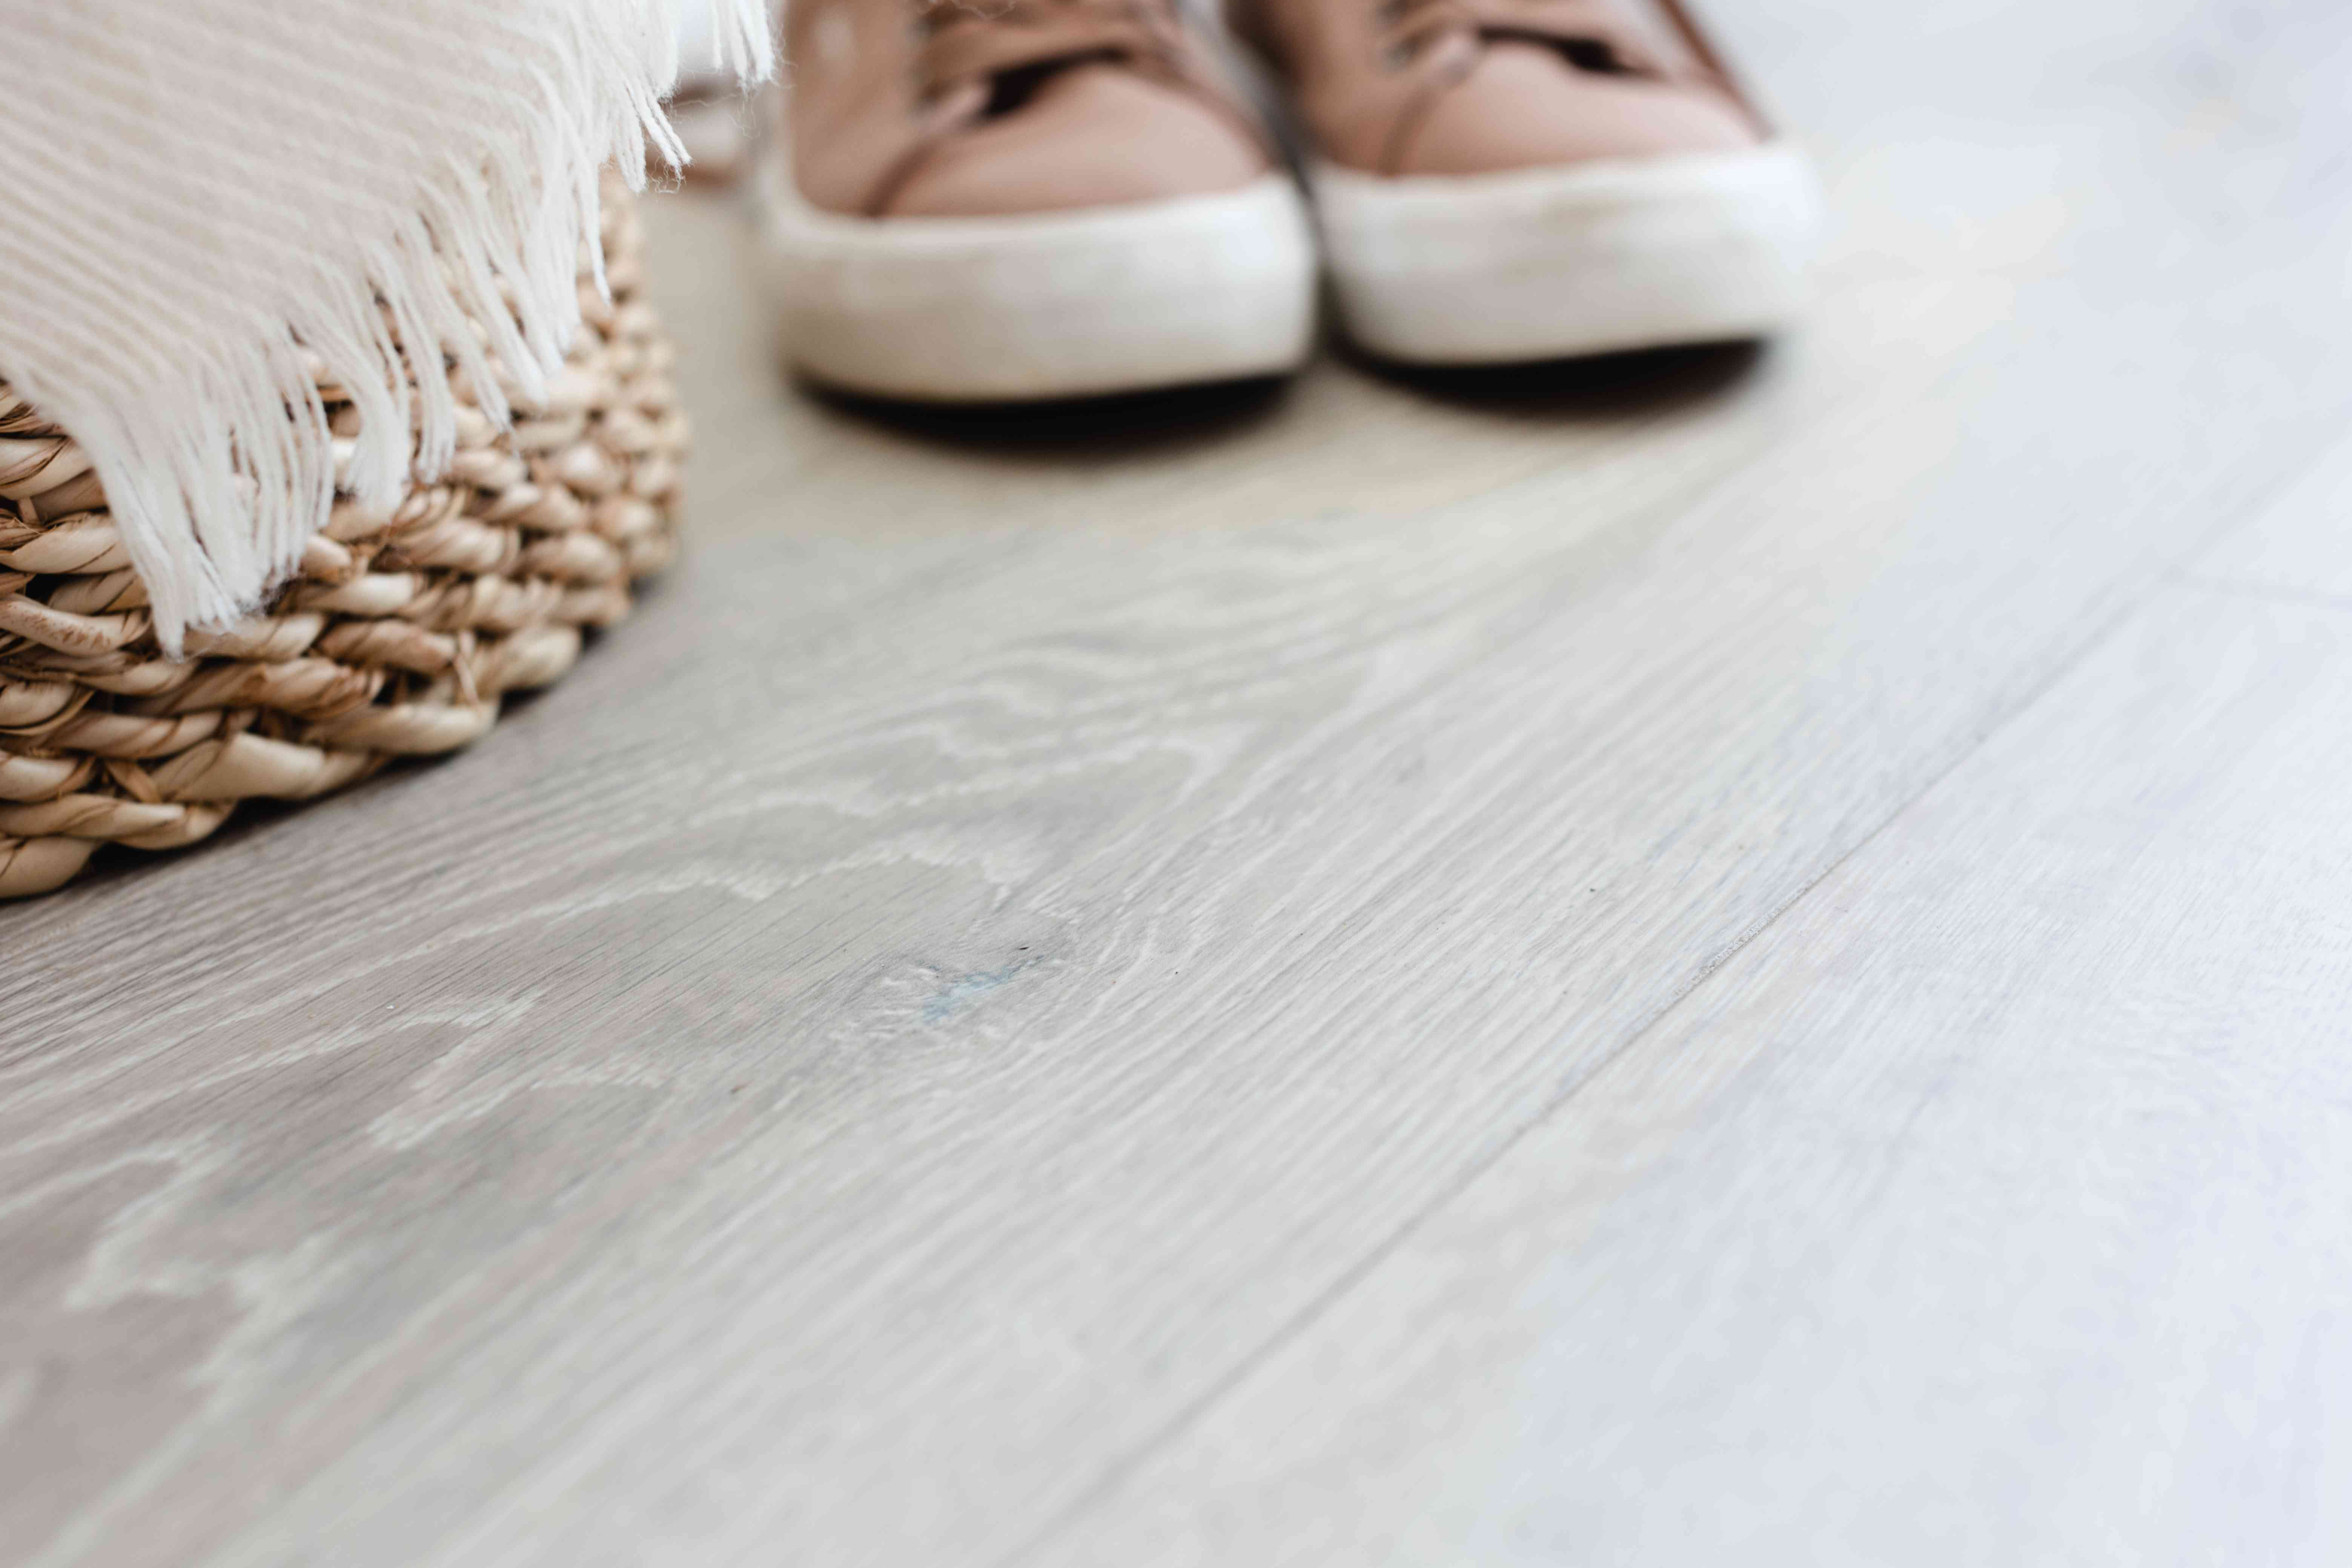 Laminate flooring of light stained wood with basket and shoes on top closeup